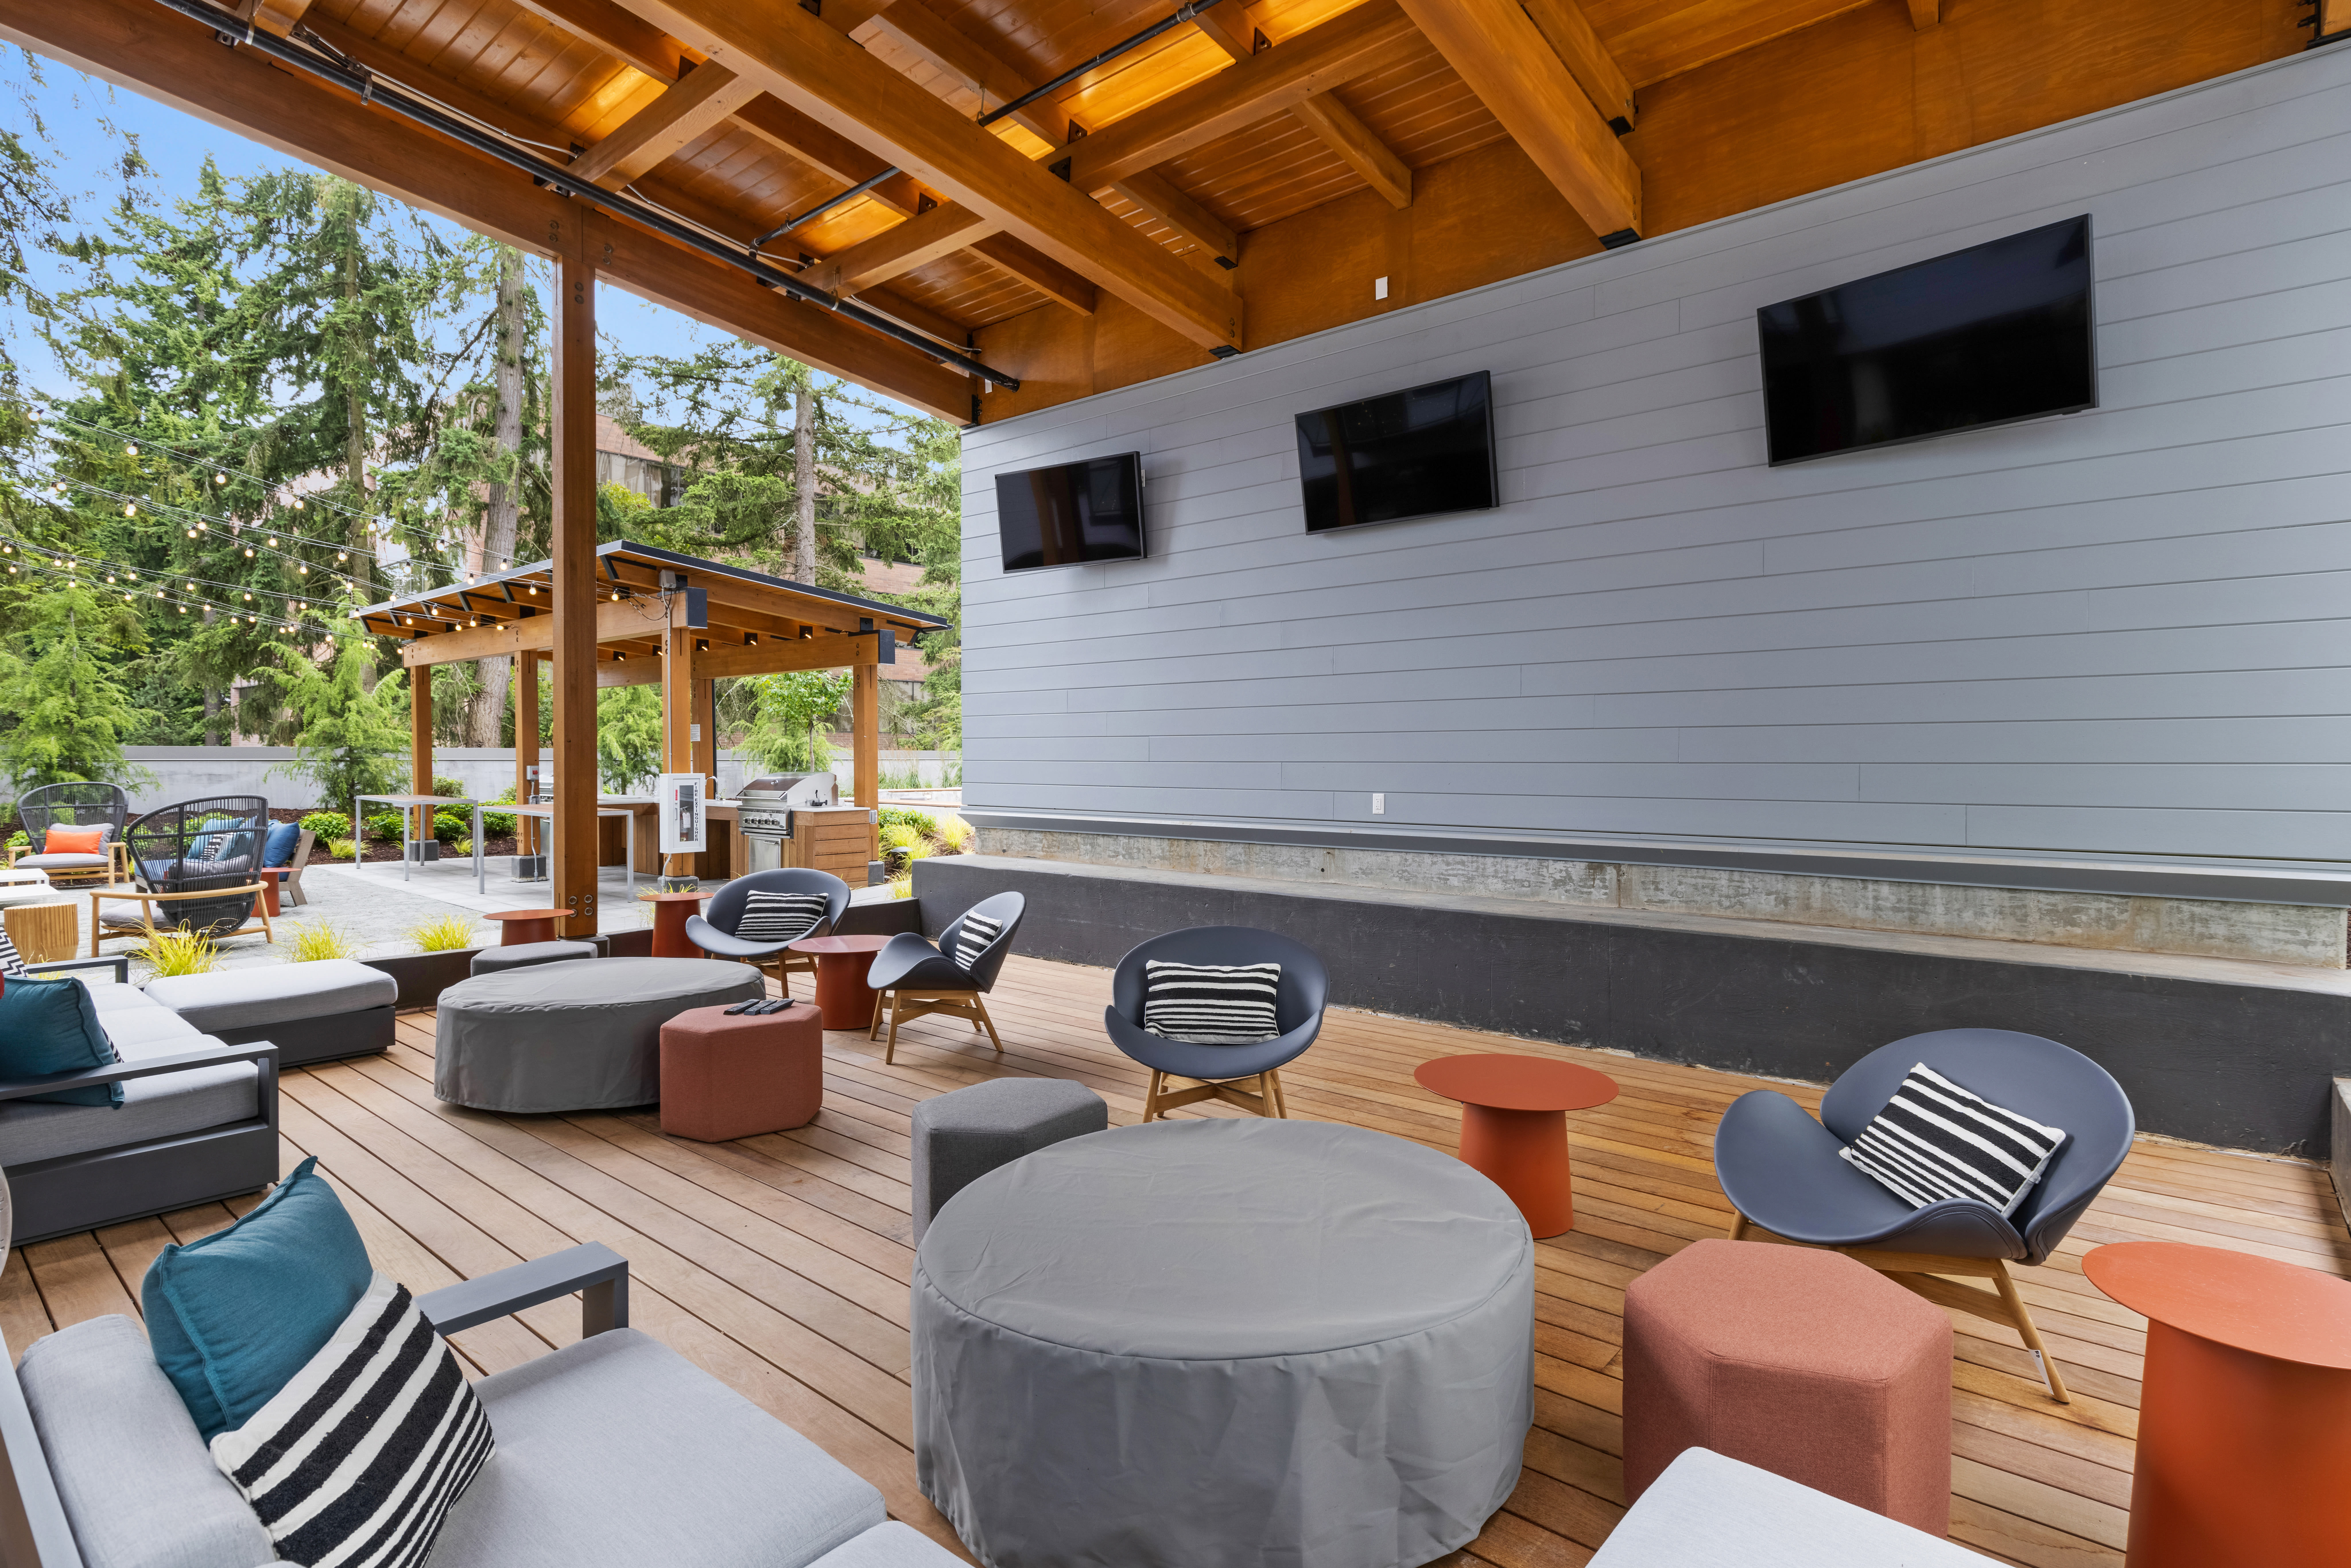 Outdoor lounge for residents at Nightingale in Redmond, Washington